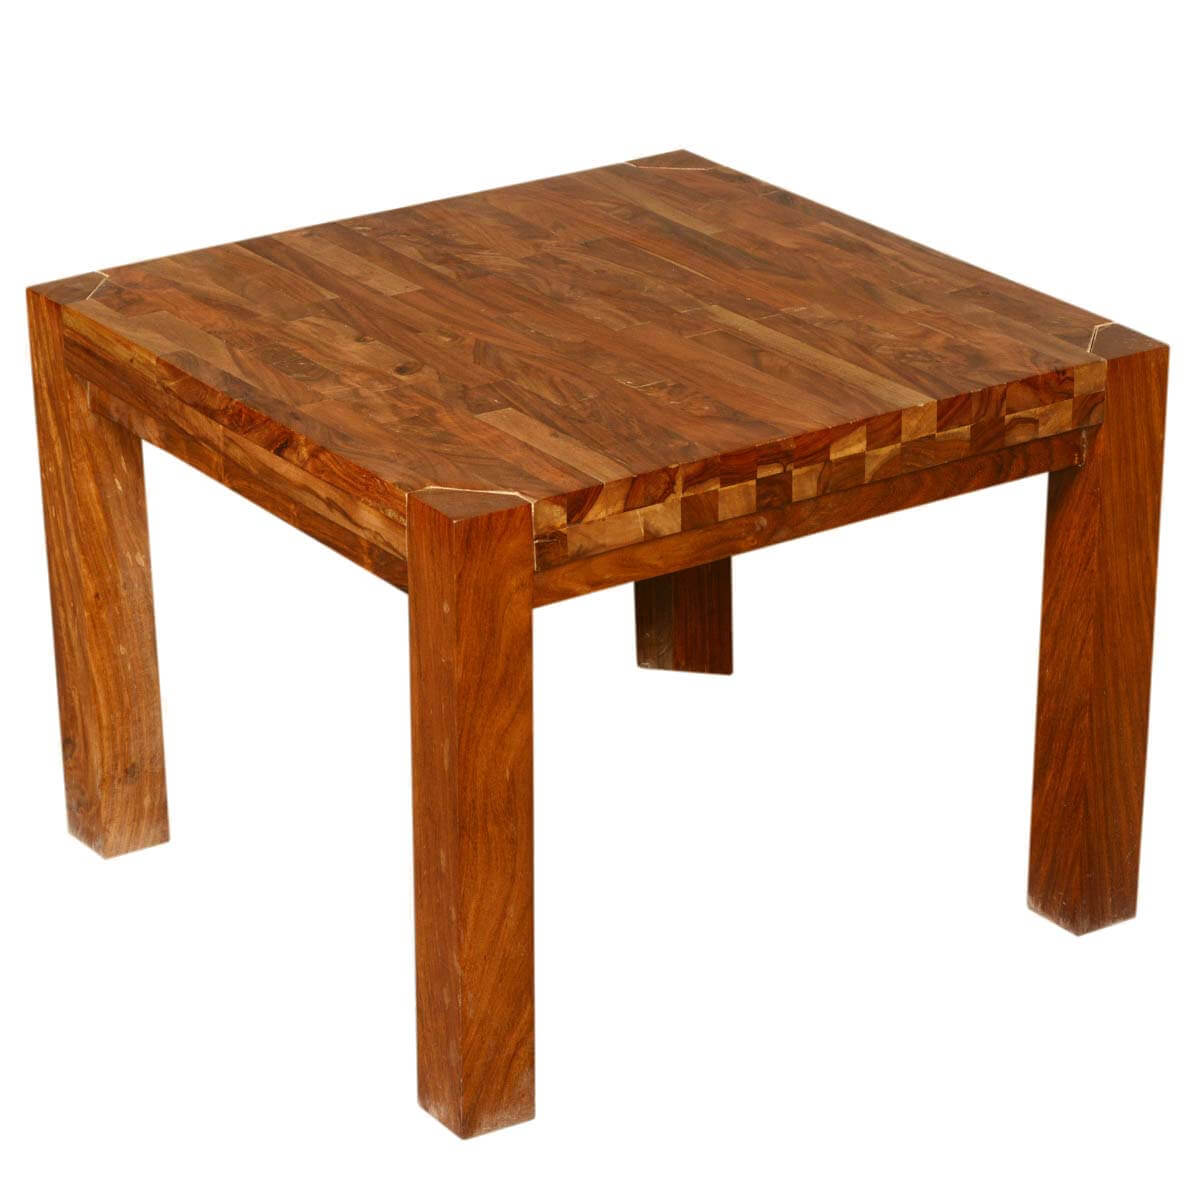 Wooden End Table Princeton Reclaimed Wood Square Accent End Table